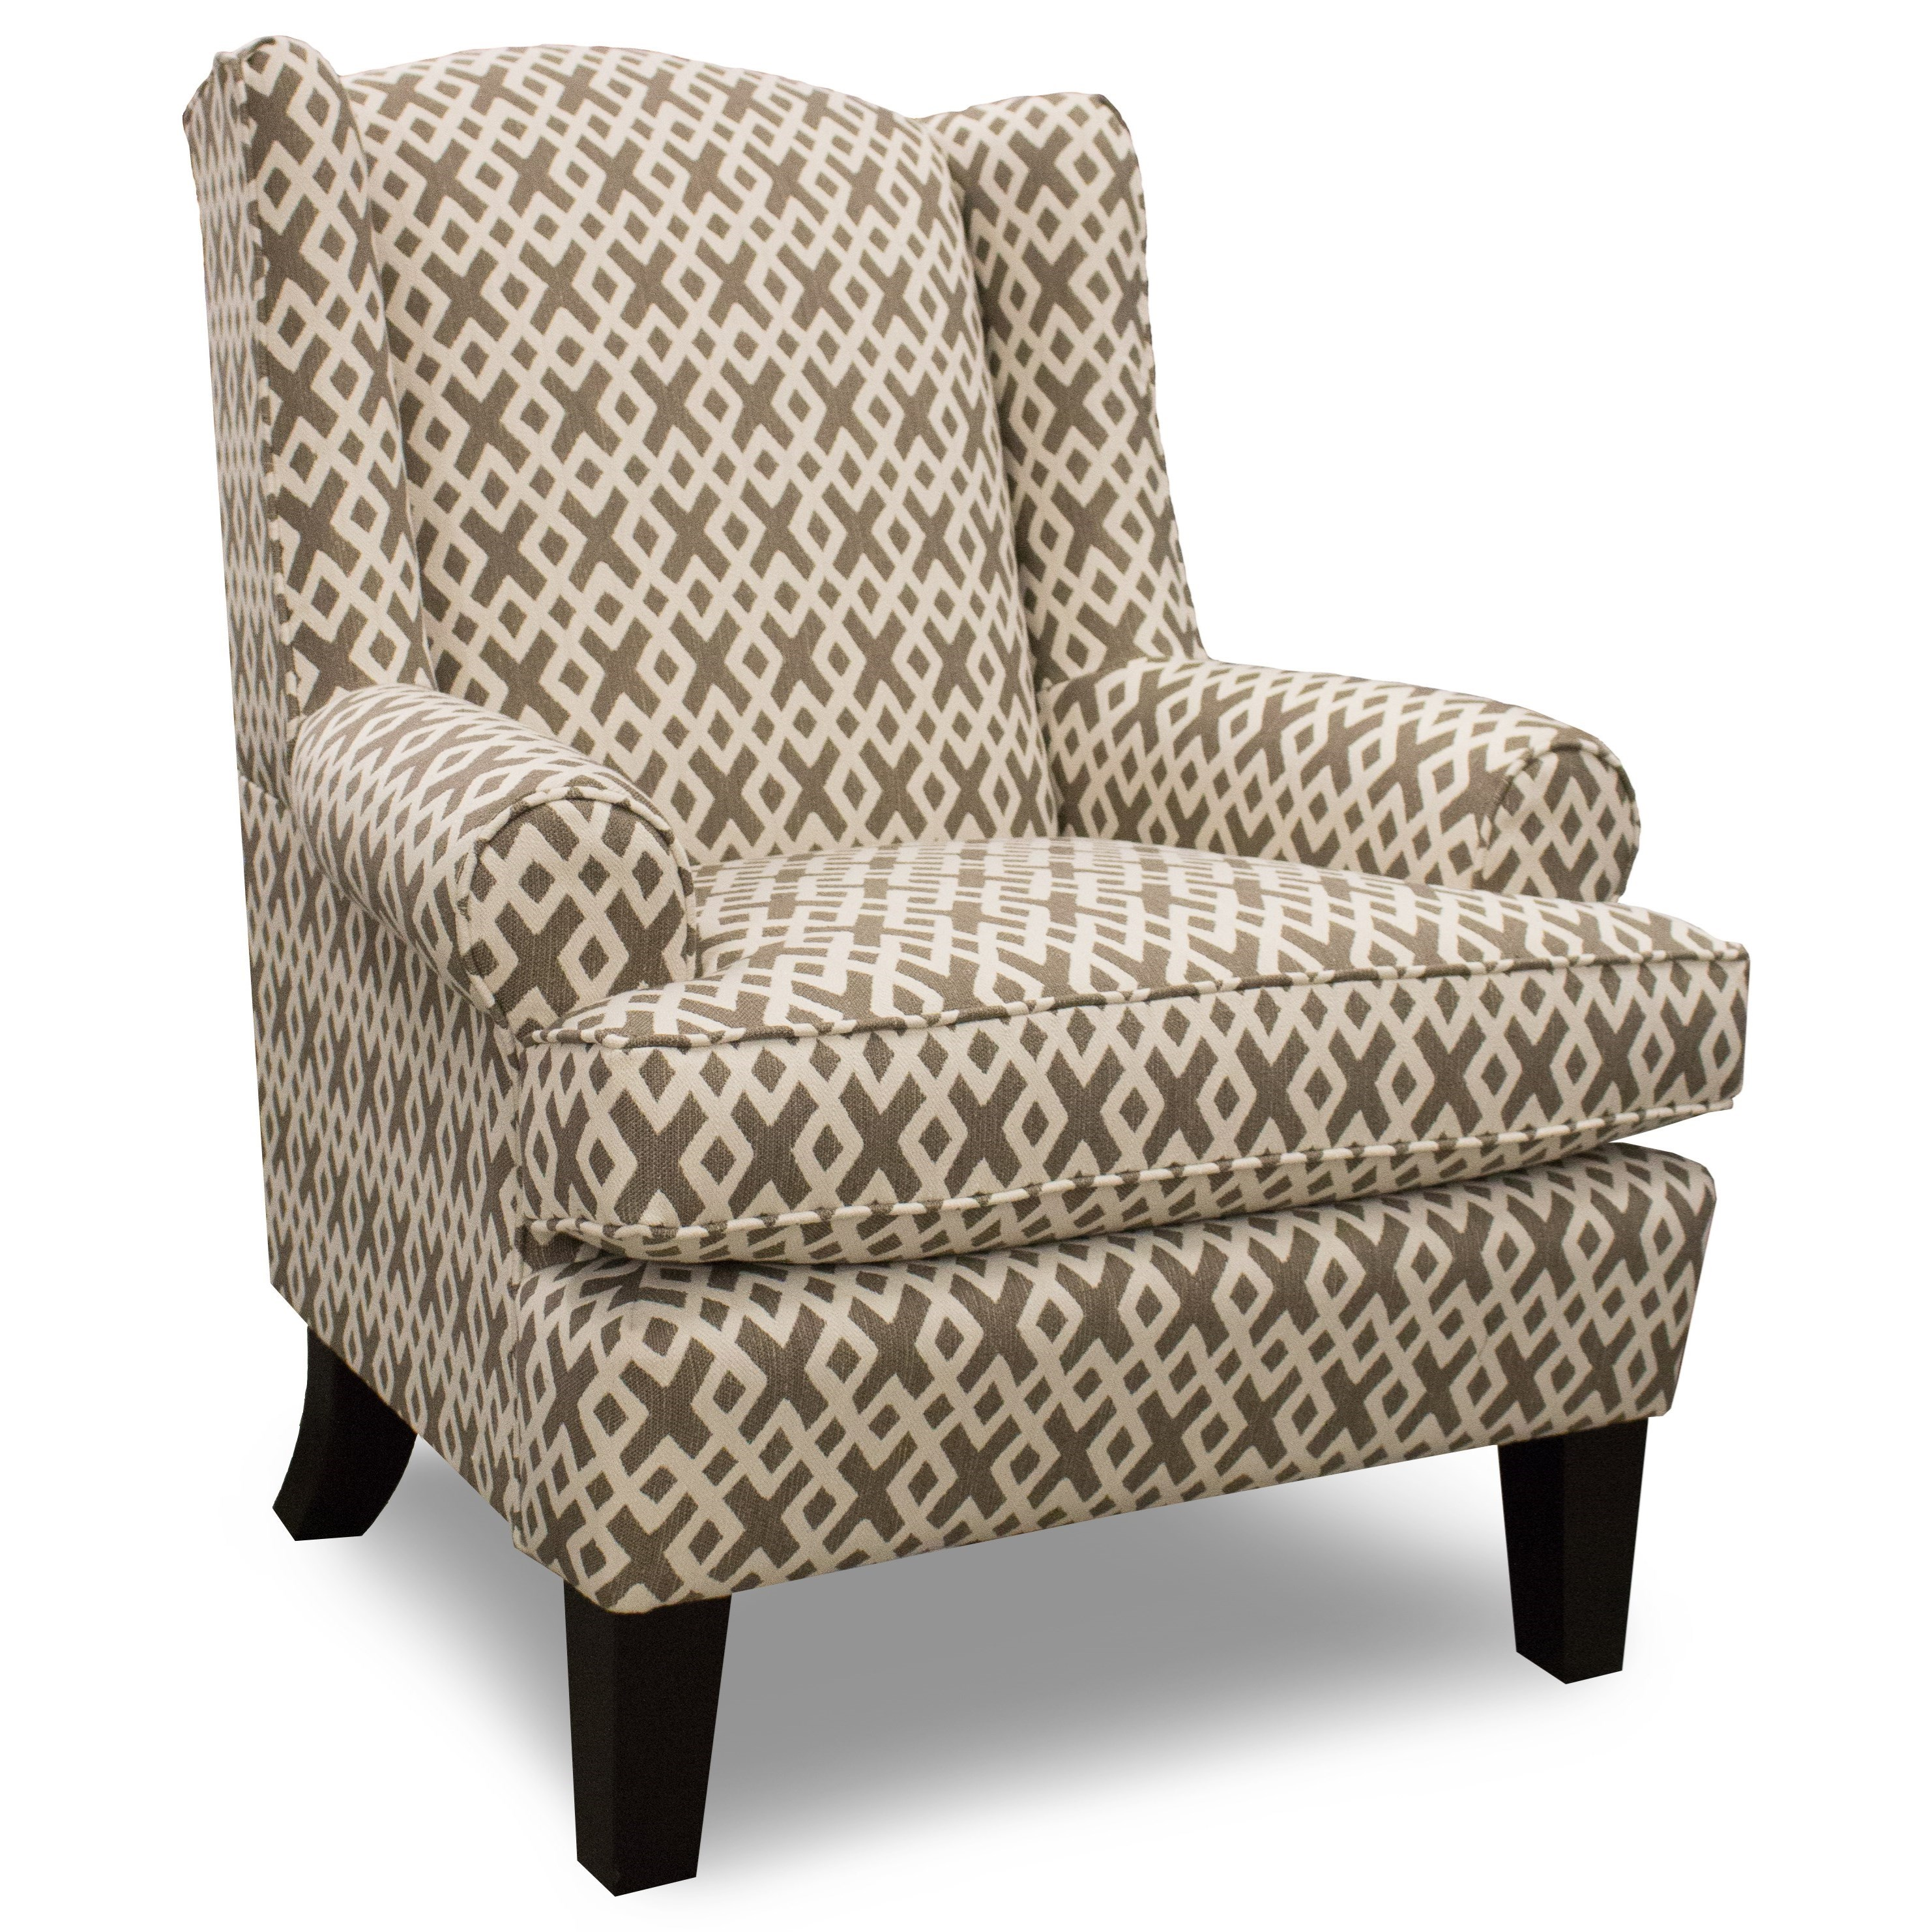 Amelia Wing Back Chair by Best Home Furnishings at Best Home Furnishings